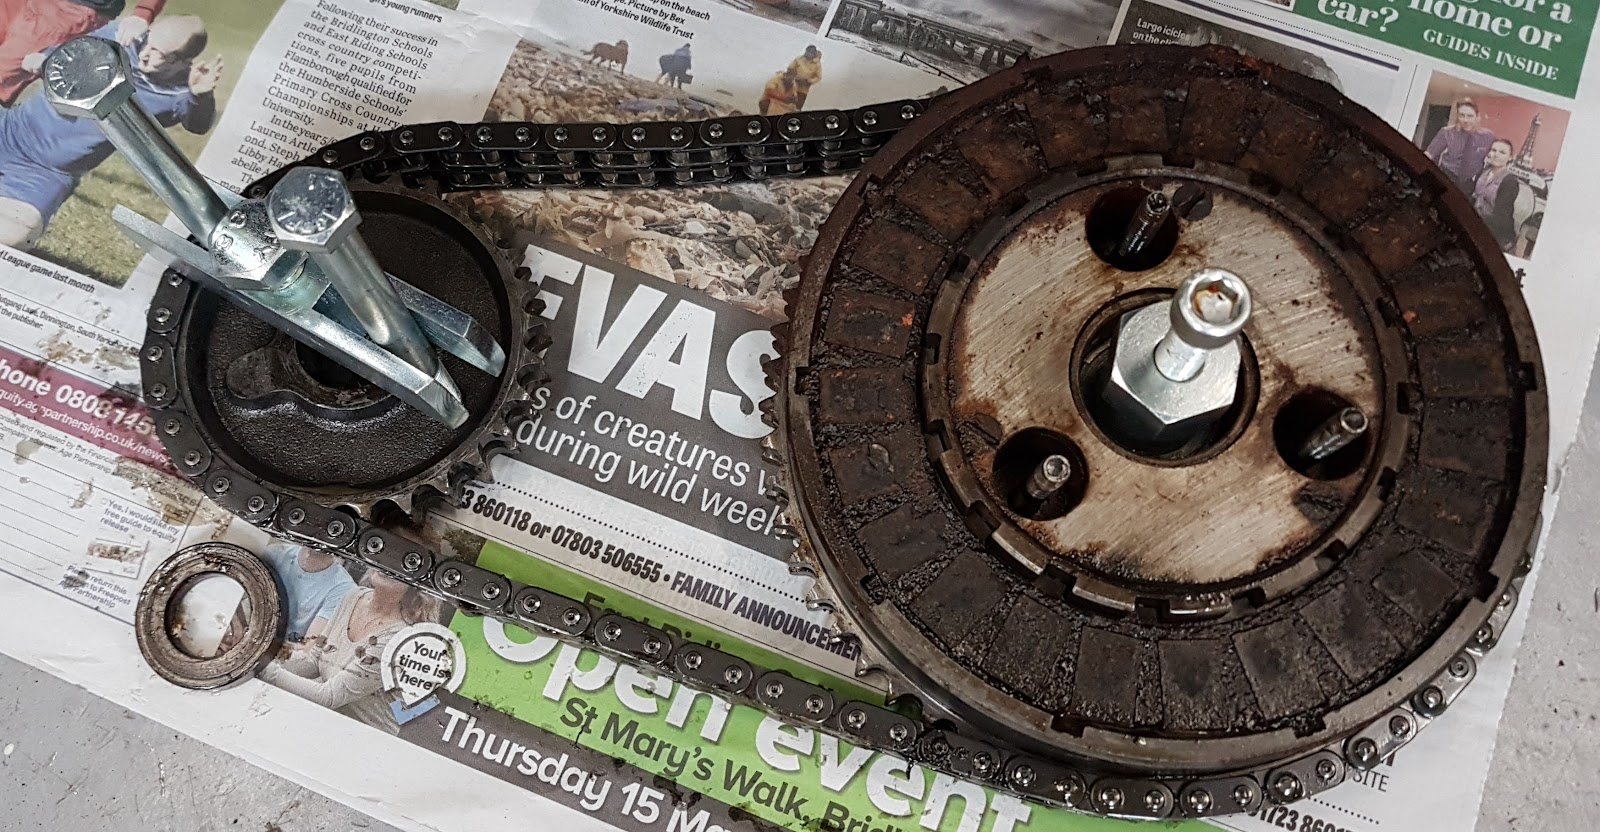 Clutch, front sprocket and chain removed from a Triumph Bonneville T120.